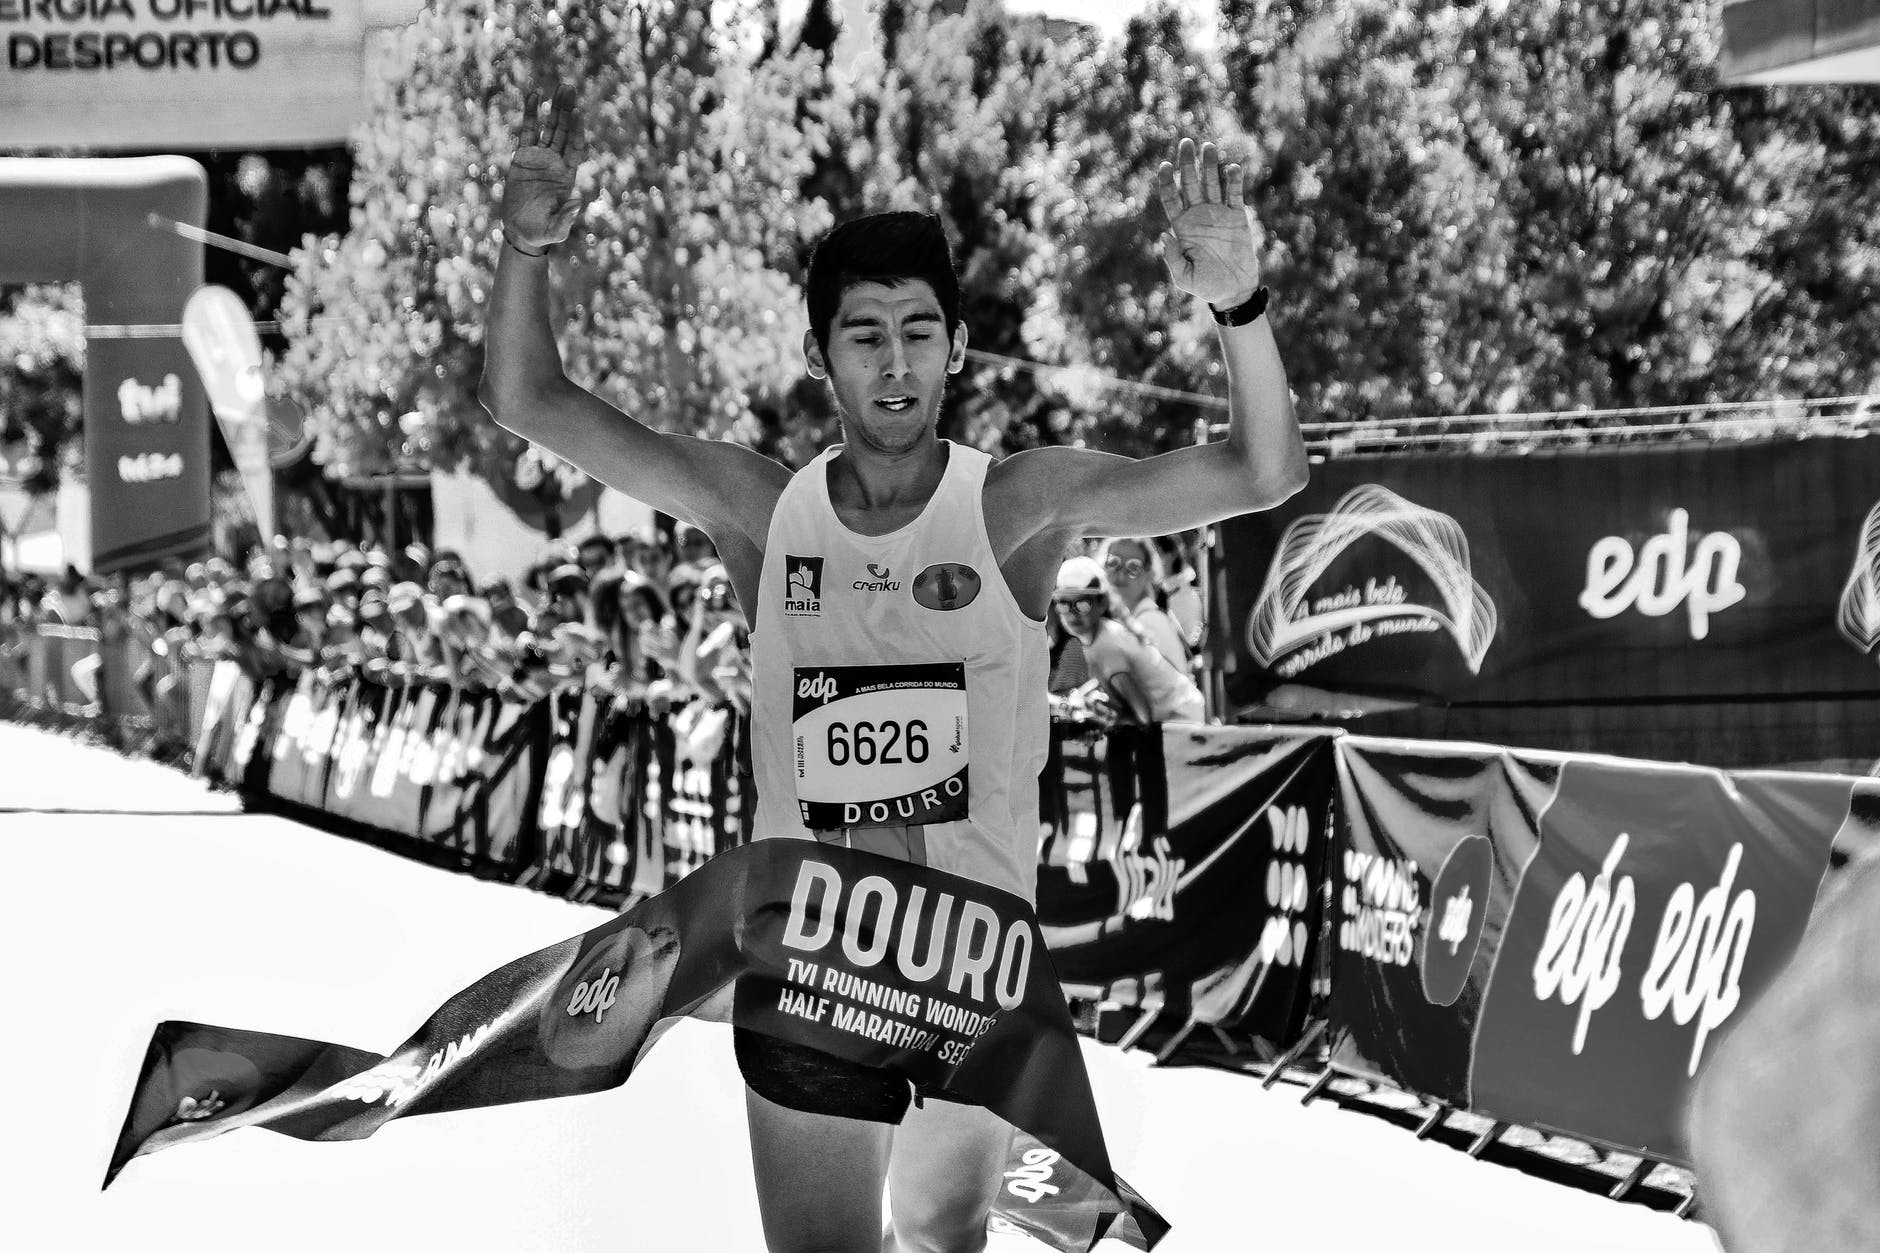 grayscale photo of man at the finish line of a marathon race